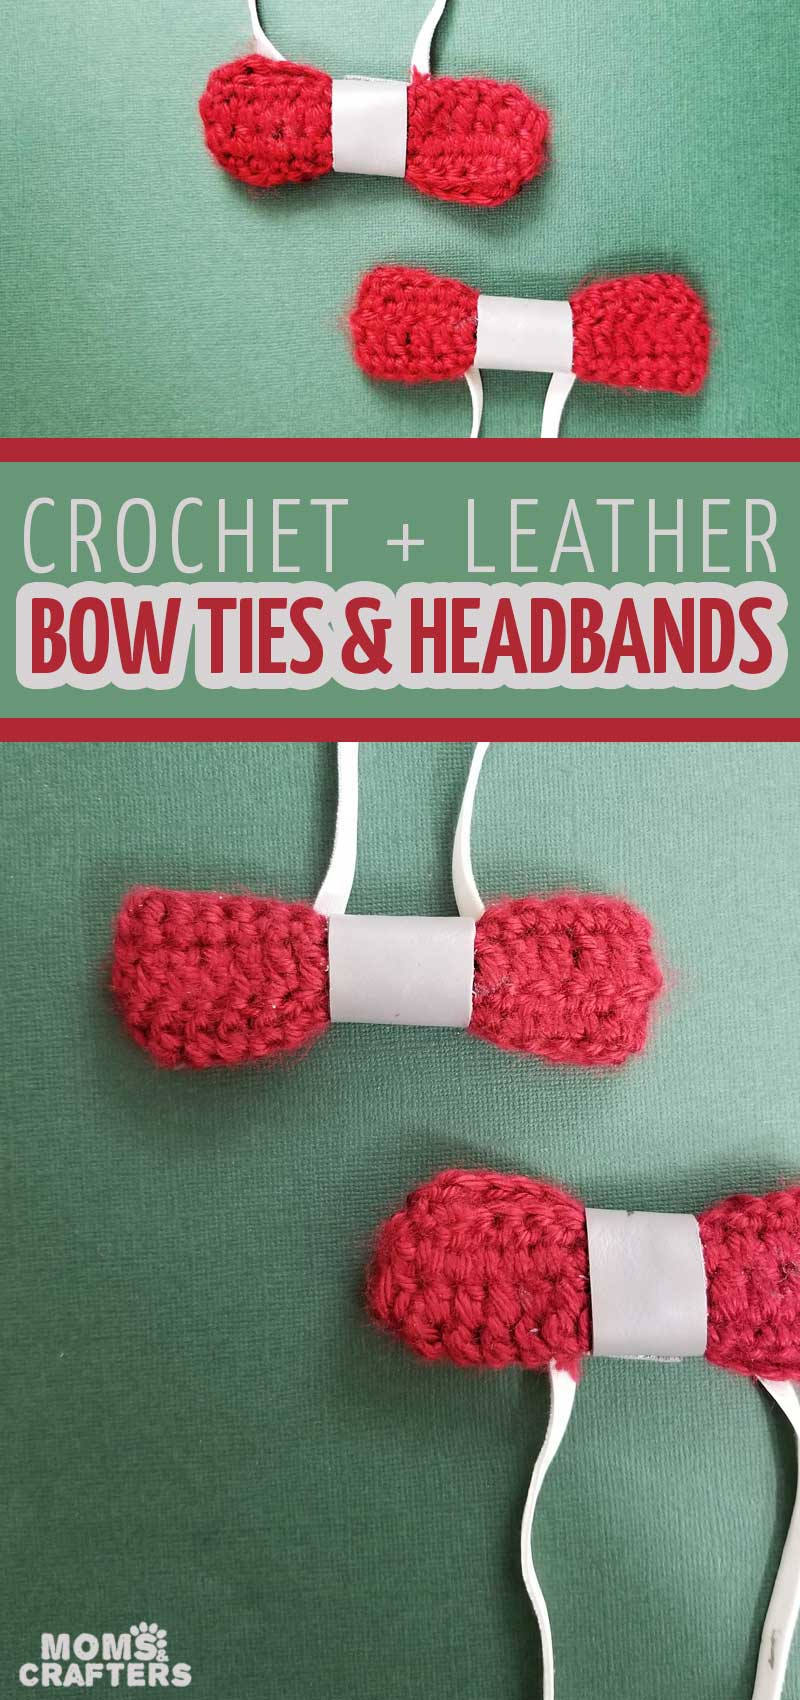 Click to learn how to crochet a bow and make your own DIY no sew bow ties and headbands! This super easy crochet project is perfect for beginners and doesn't even require a pattern to make it!